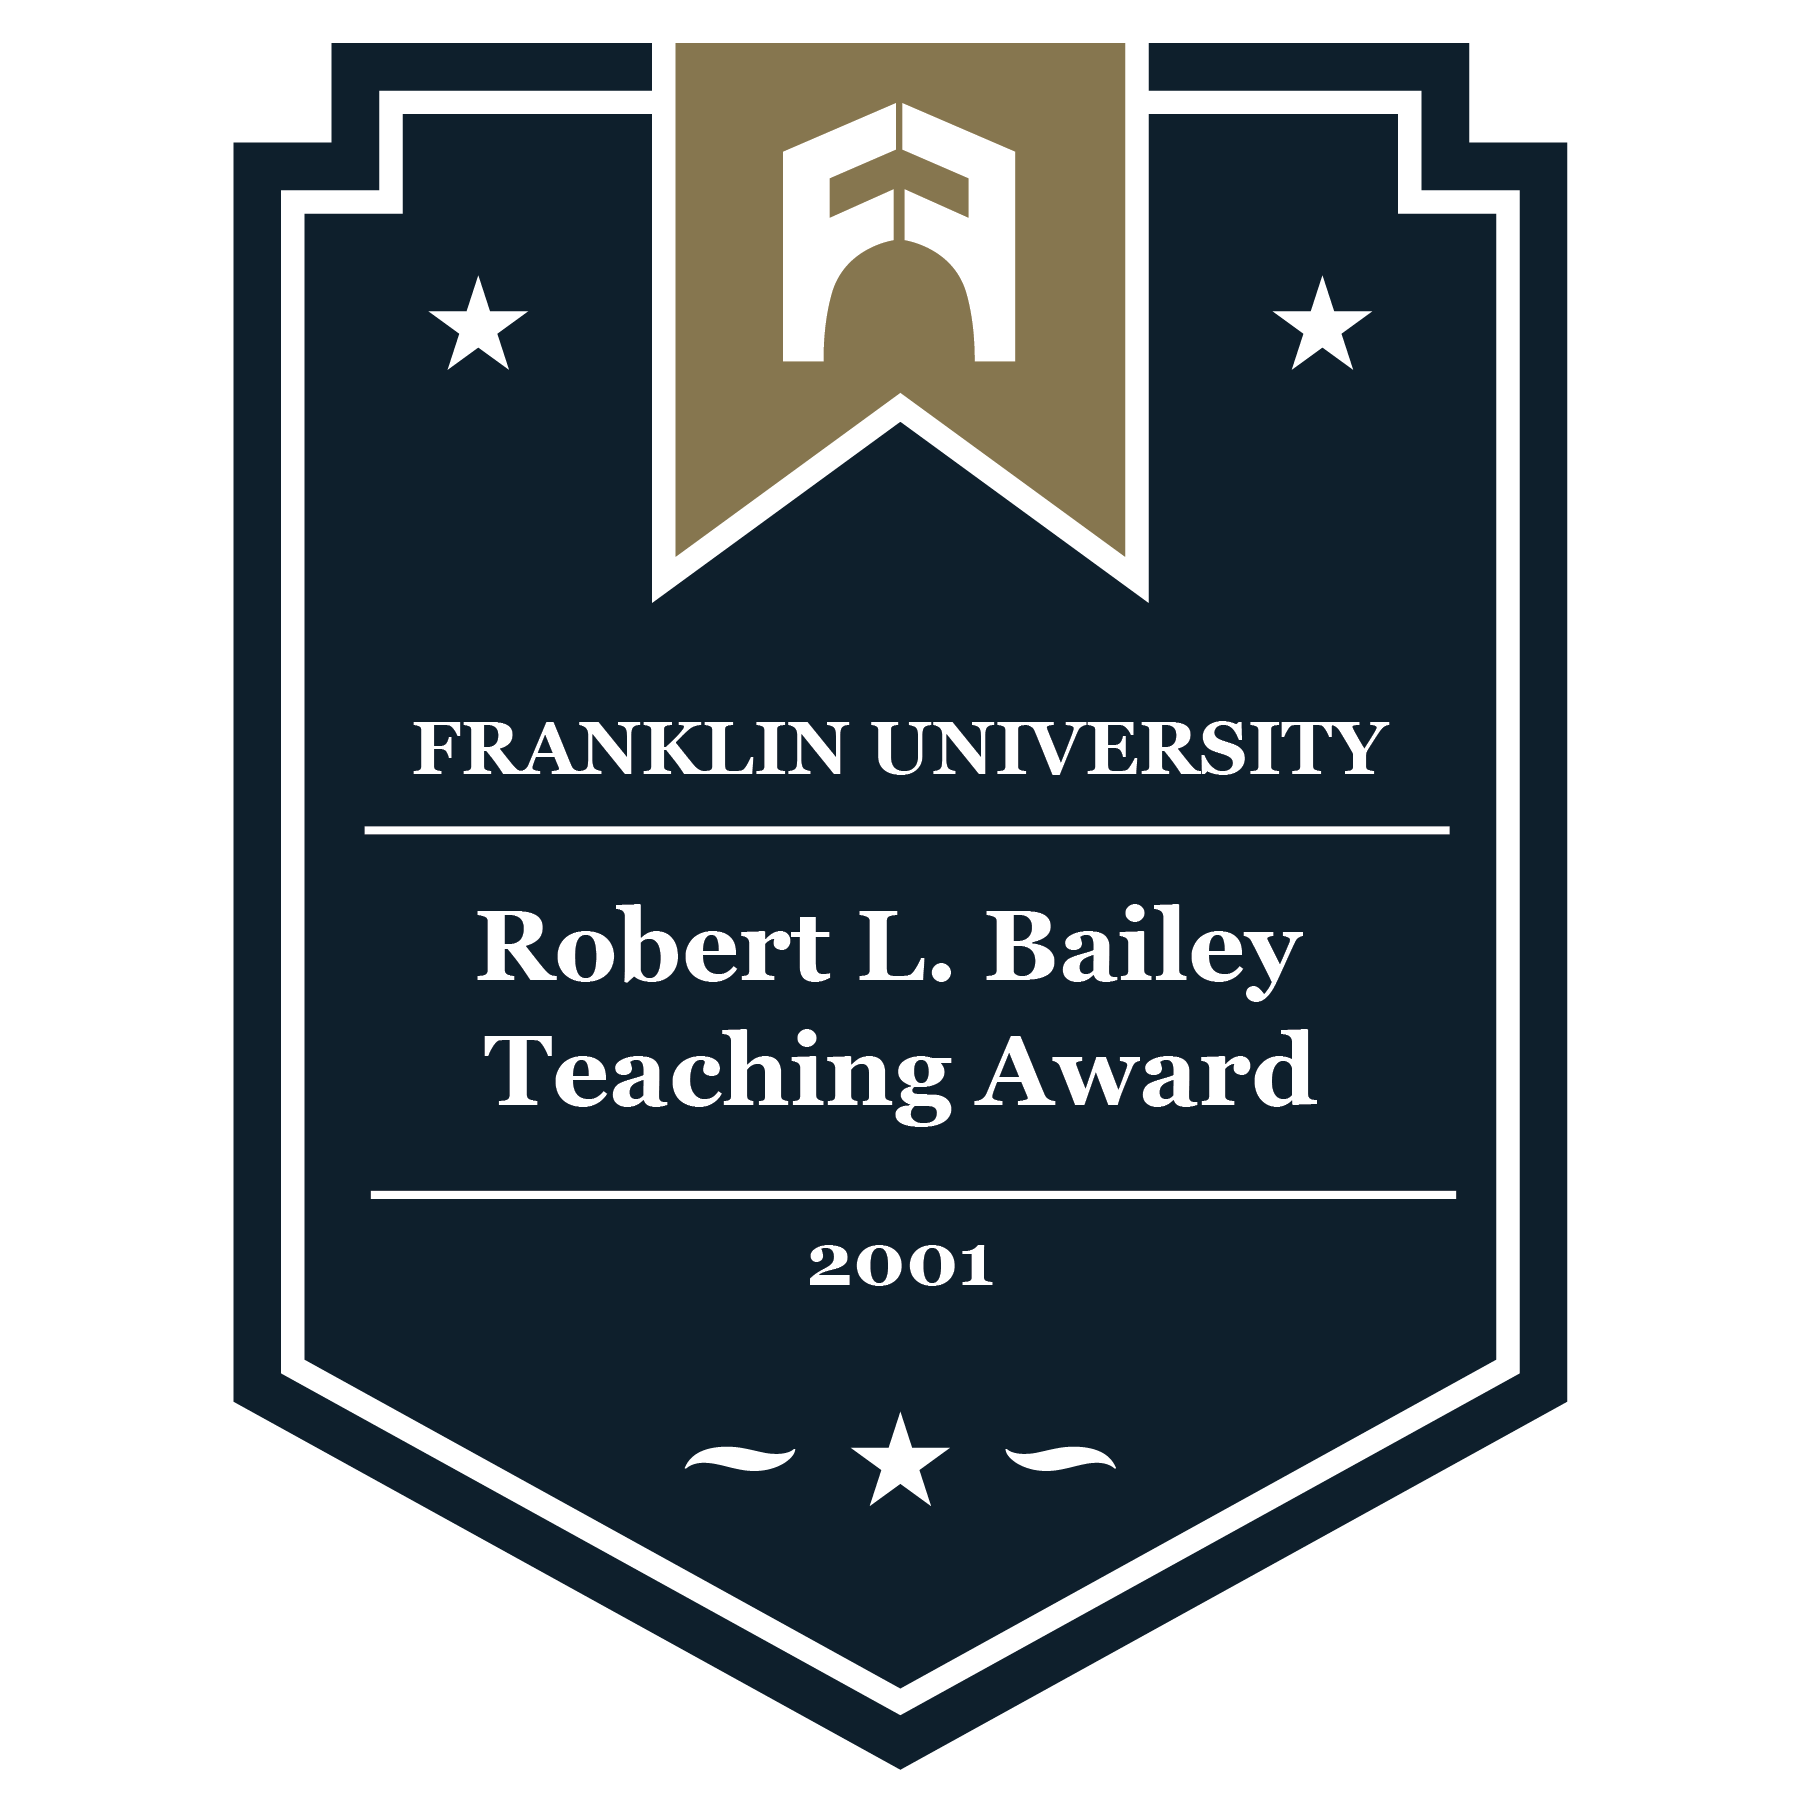 2001 Robert L. Bailey Teaching Award